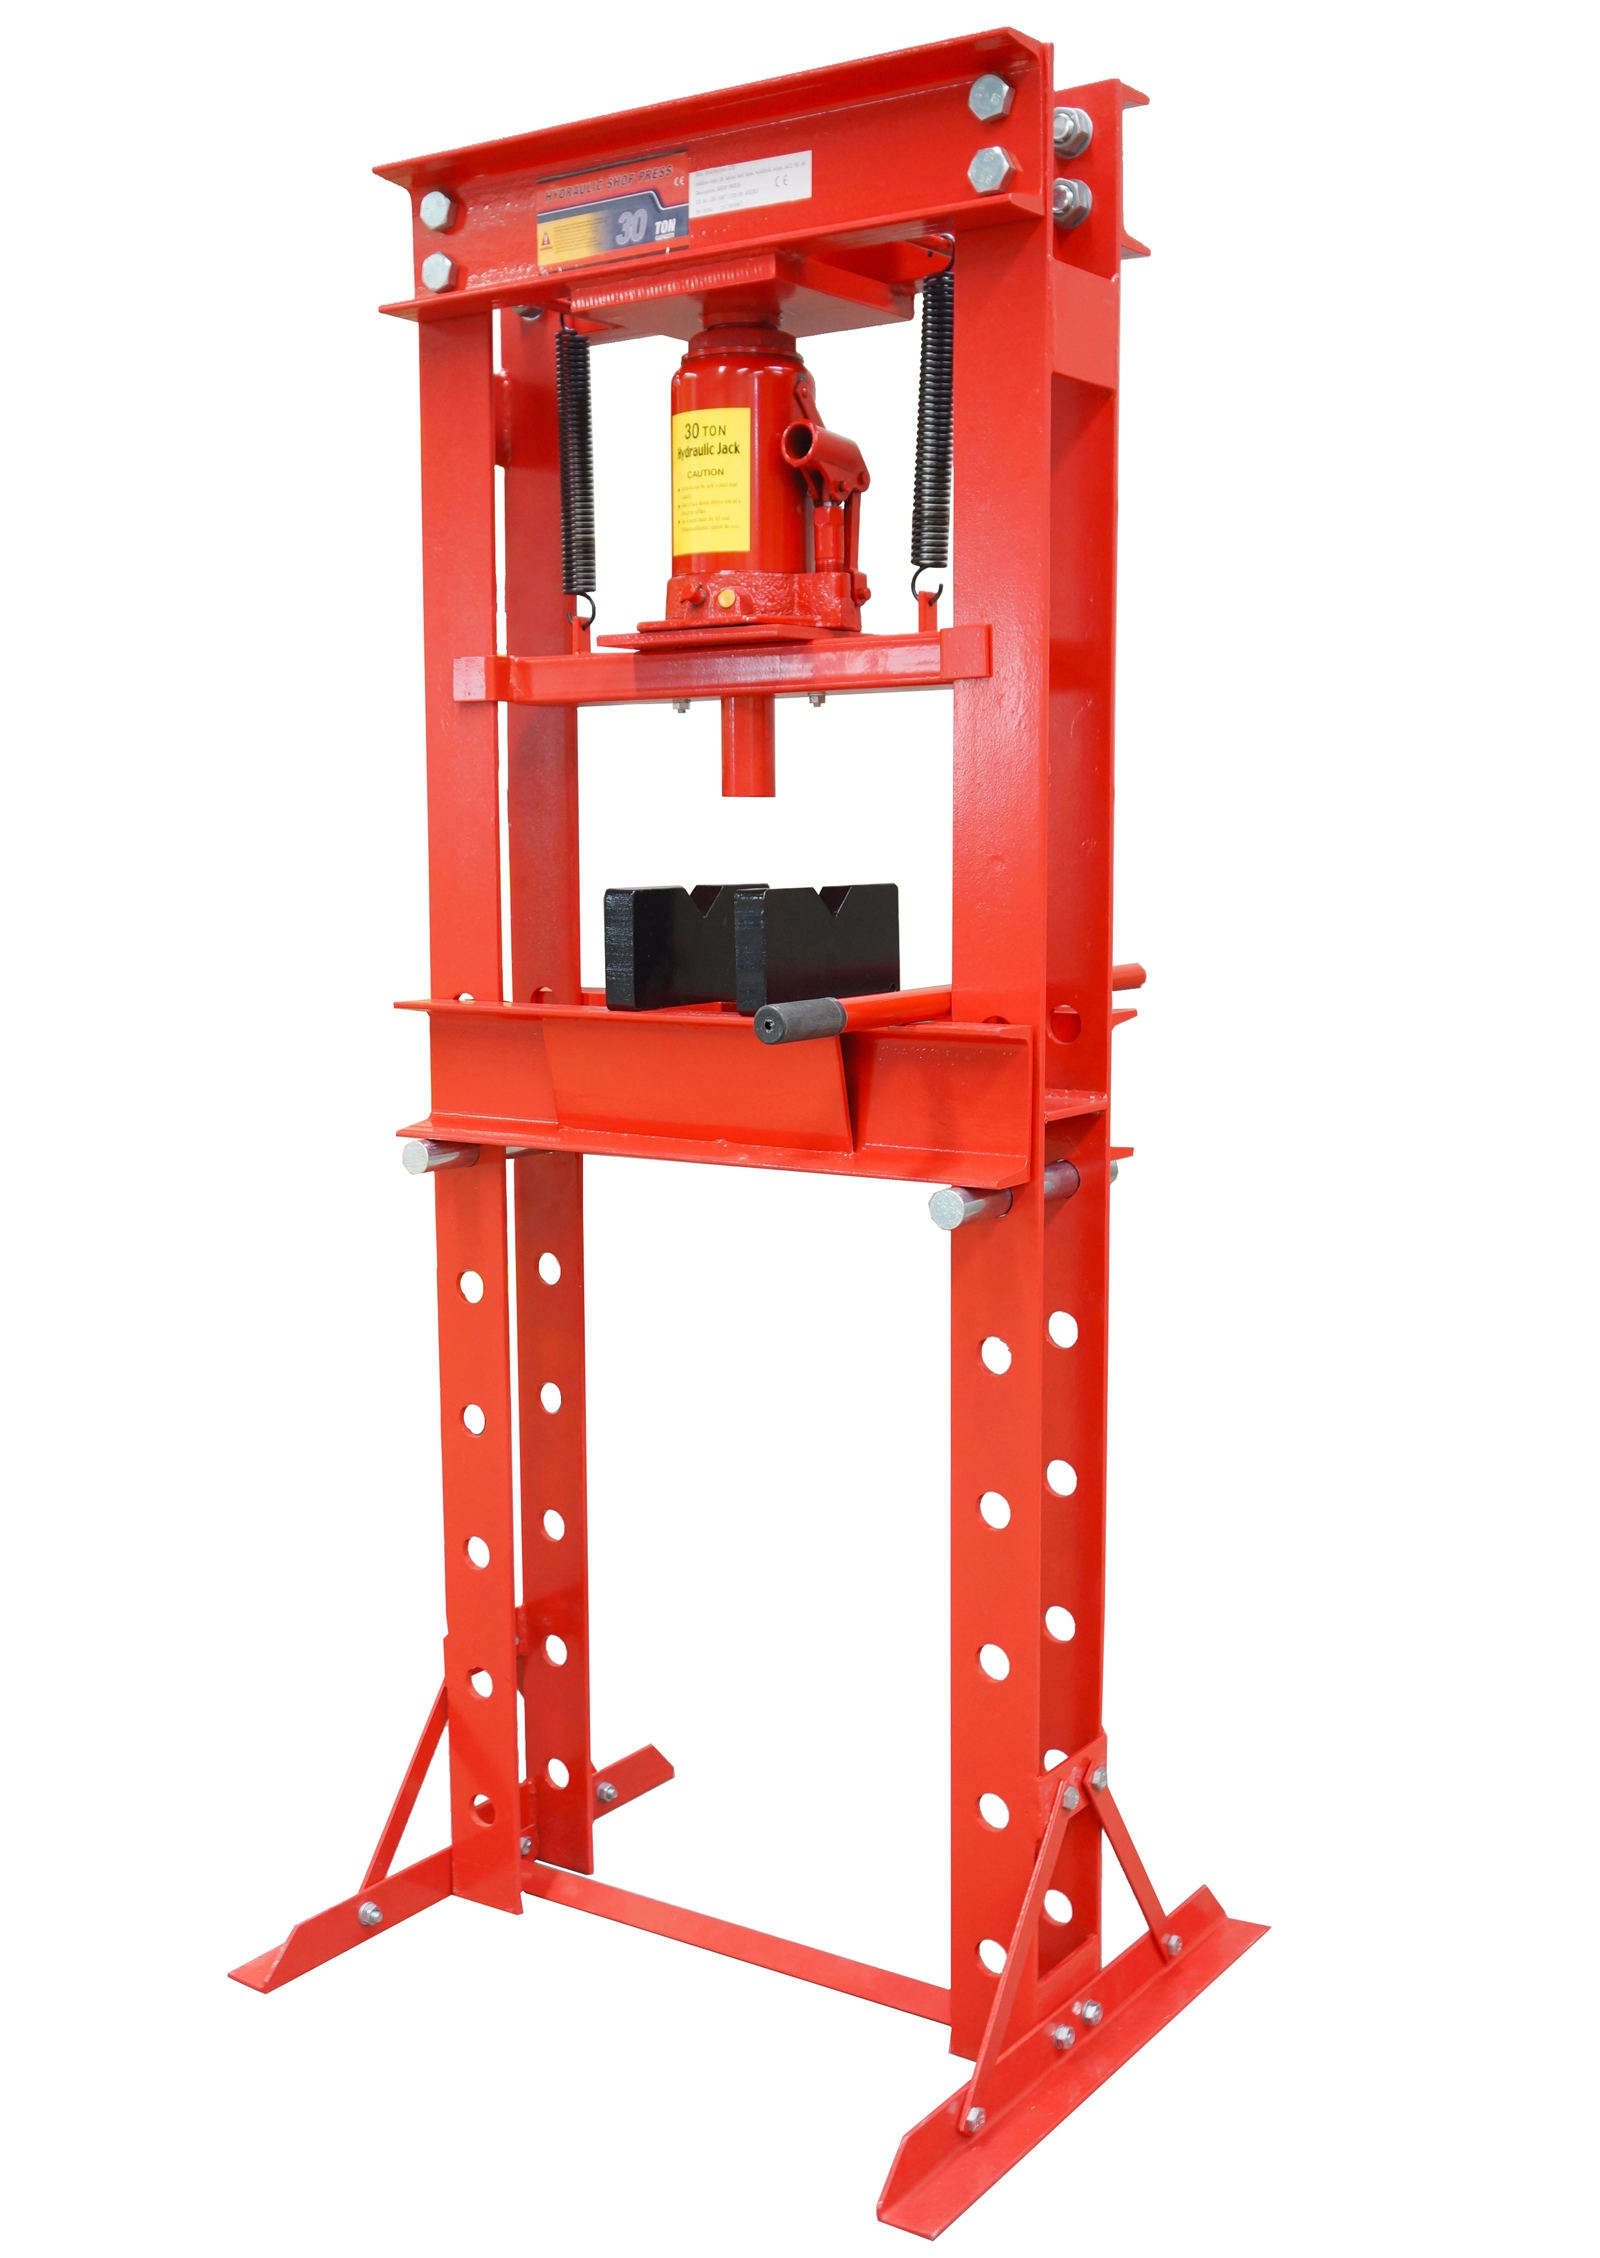 Foxhunter Red 30 Ton Hydraulic Workshop Garage Shop Press